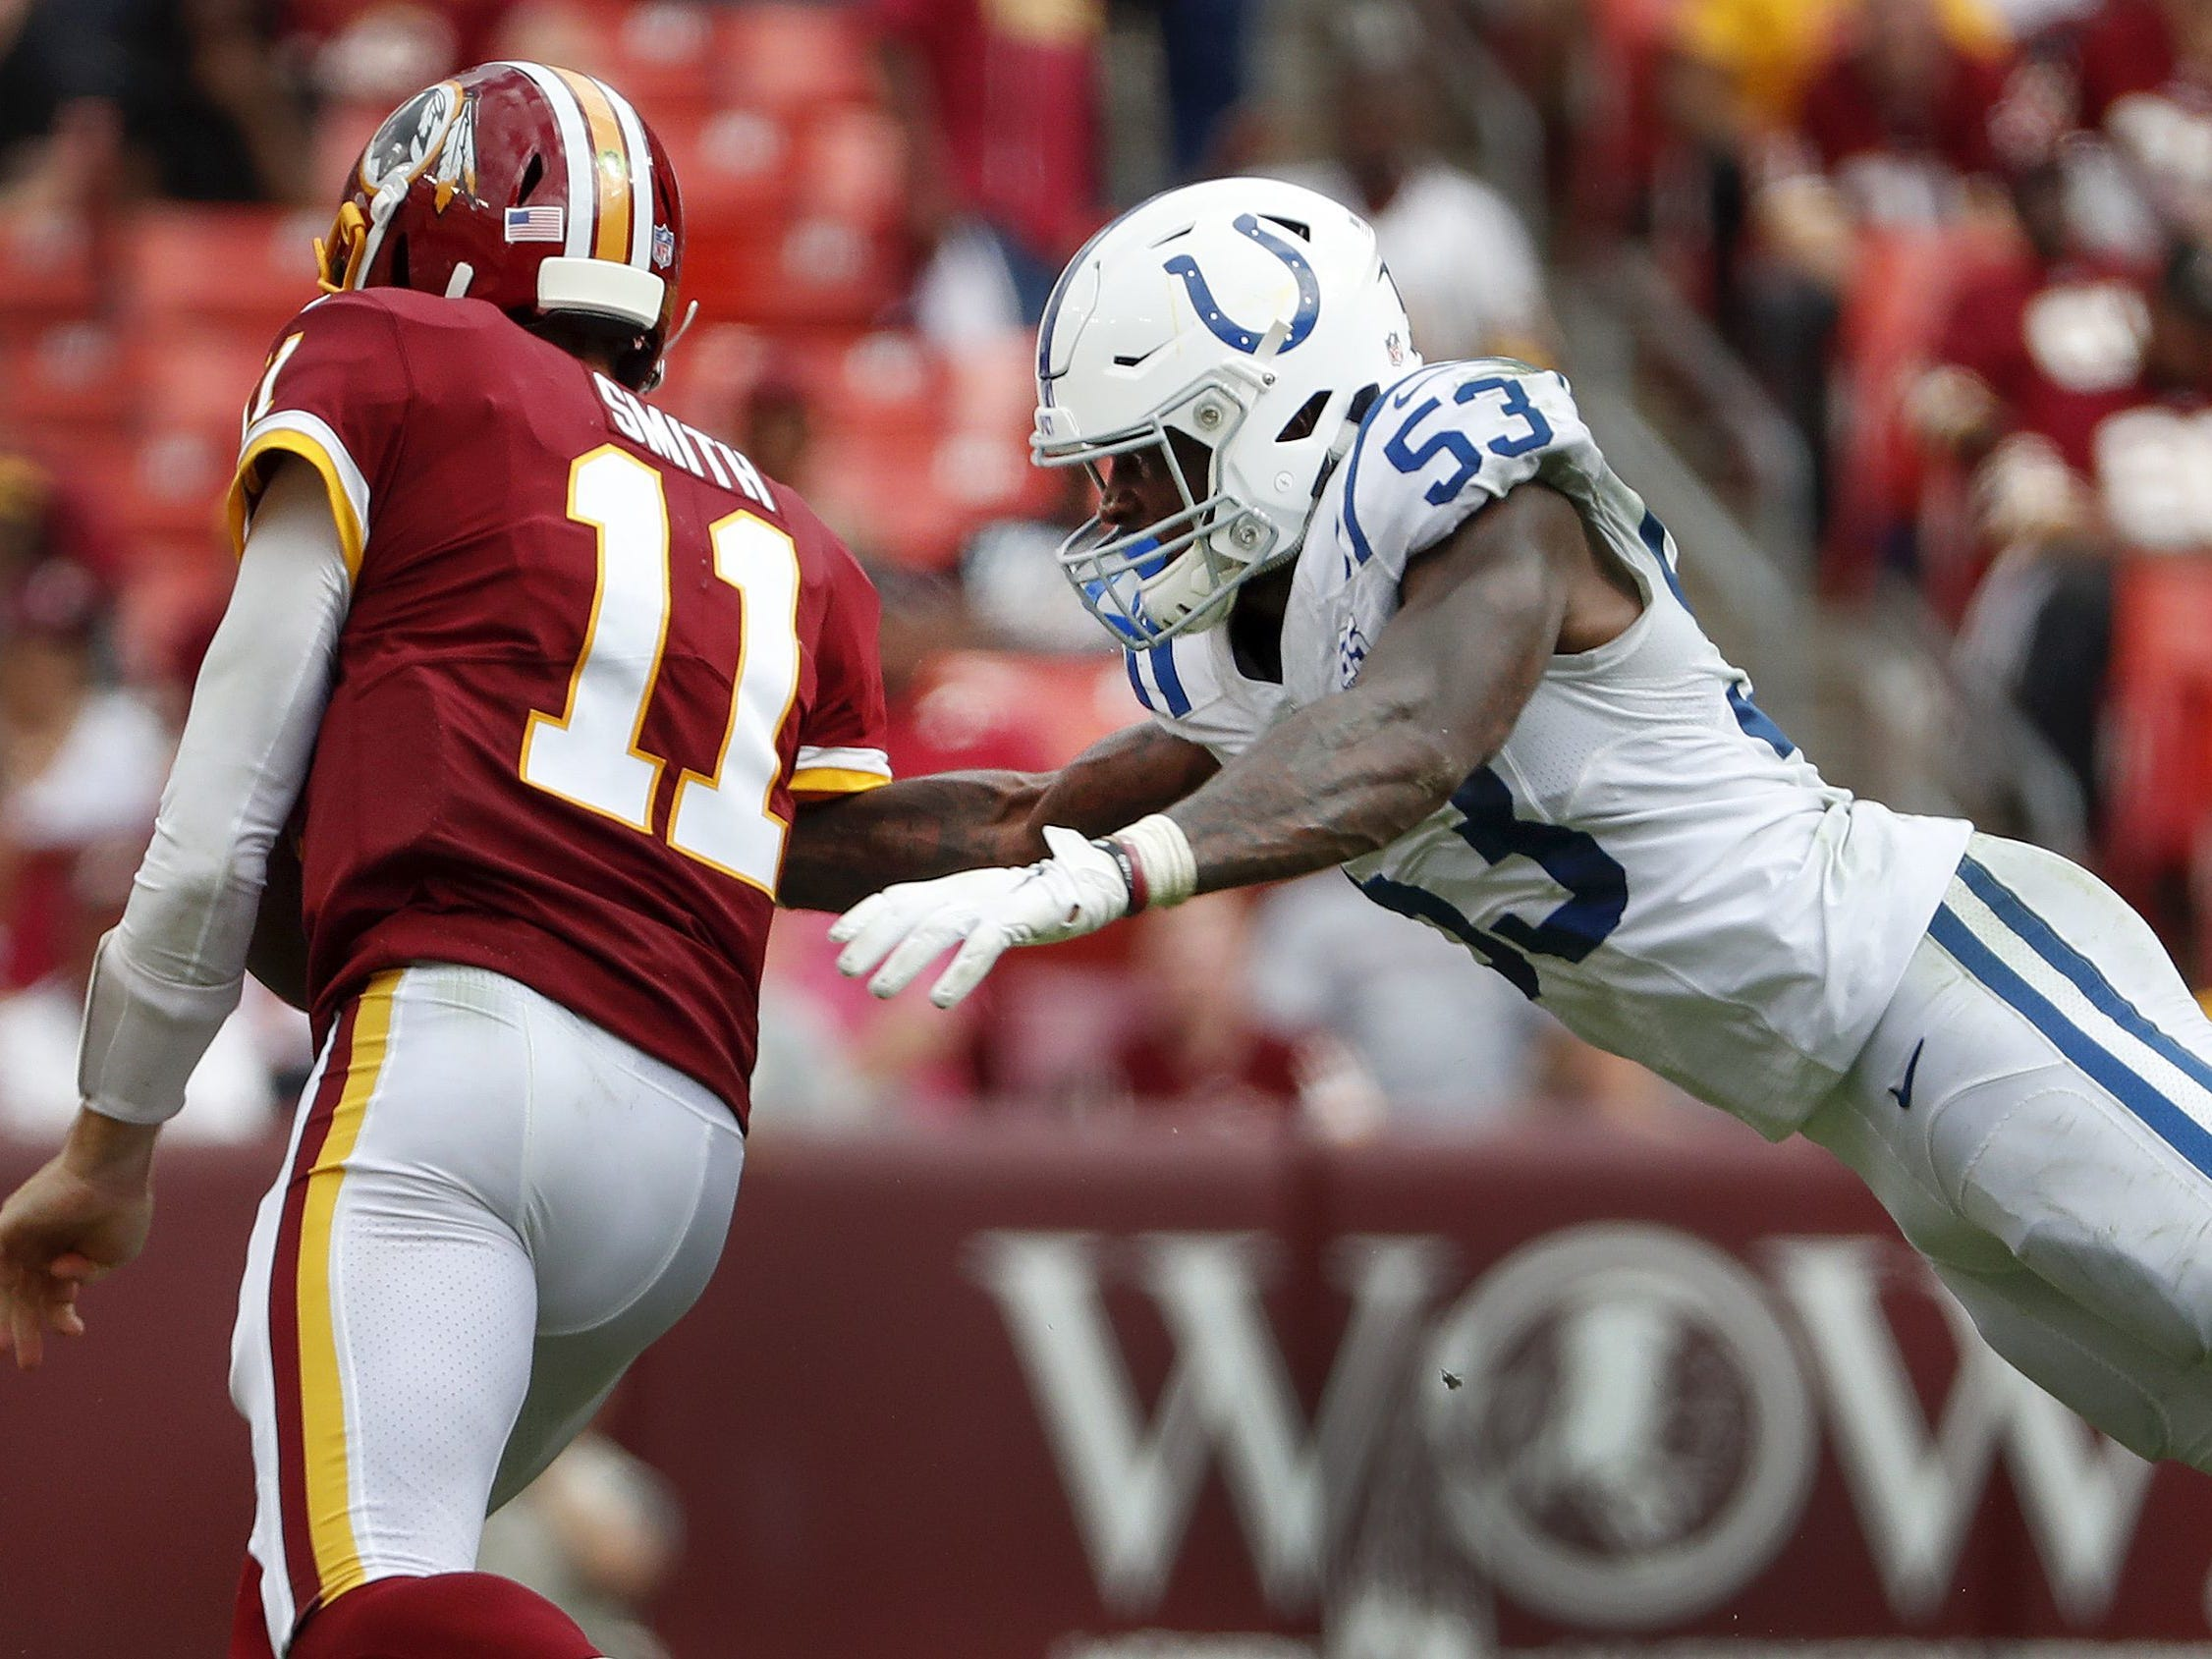 Colts linebacker Darius Leonard dives at Redskins quarterback Alex Smith in the second half of their Sept. 16, 2018 game.